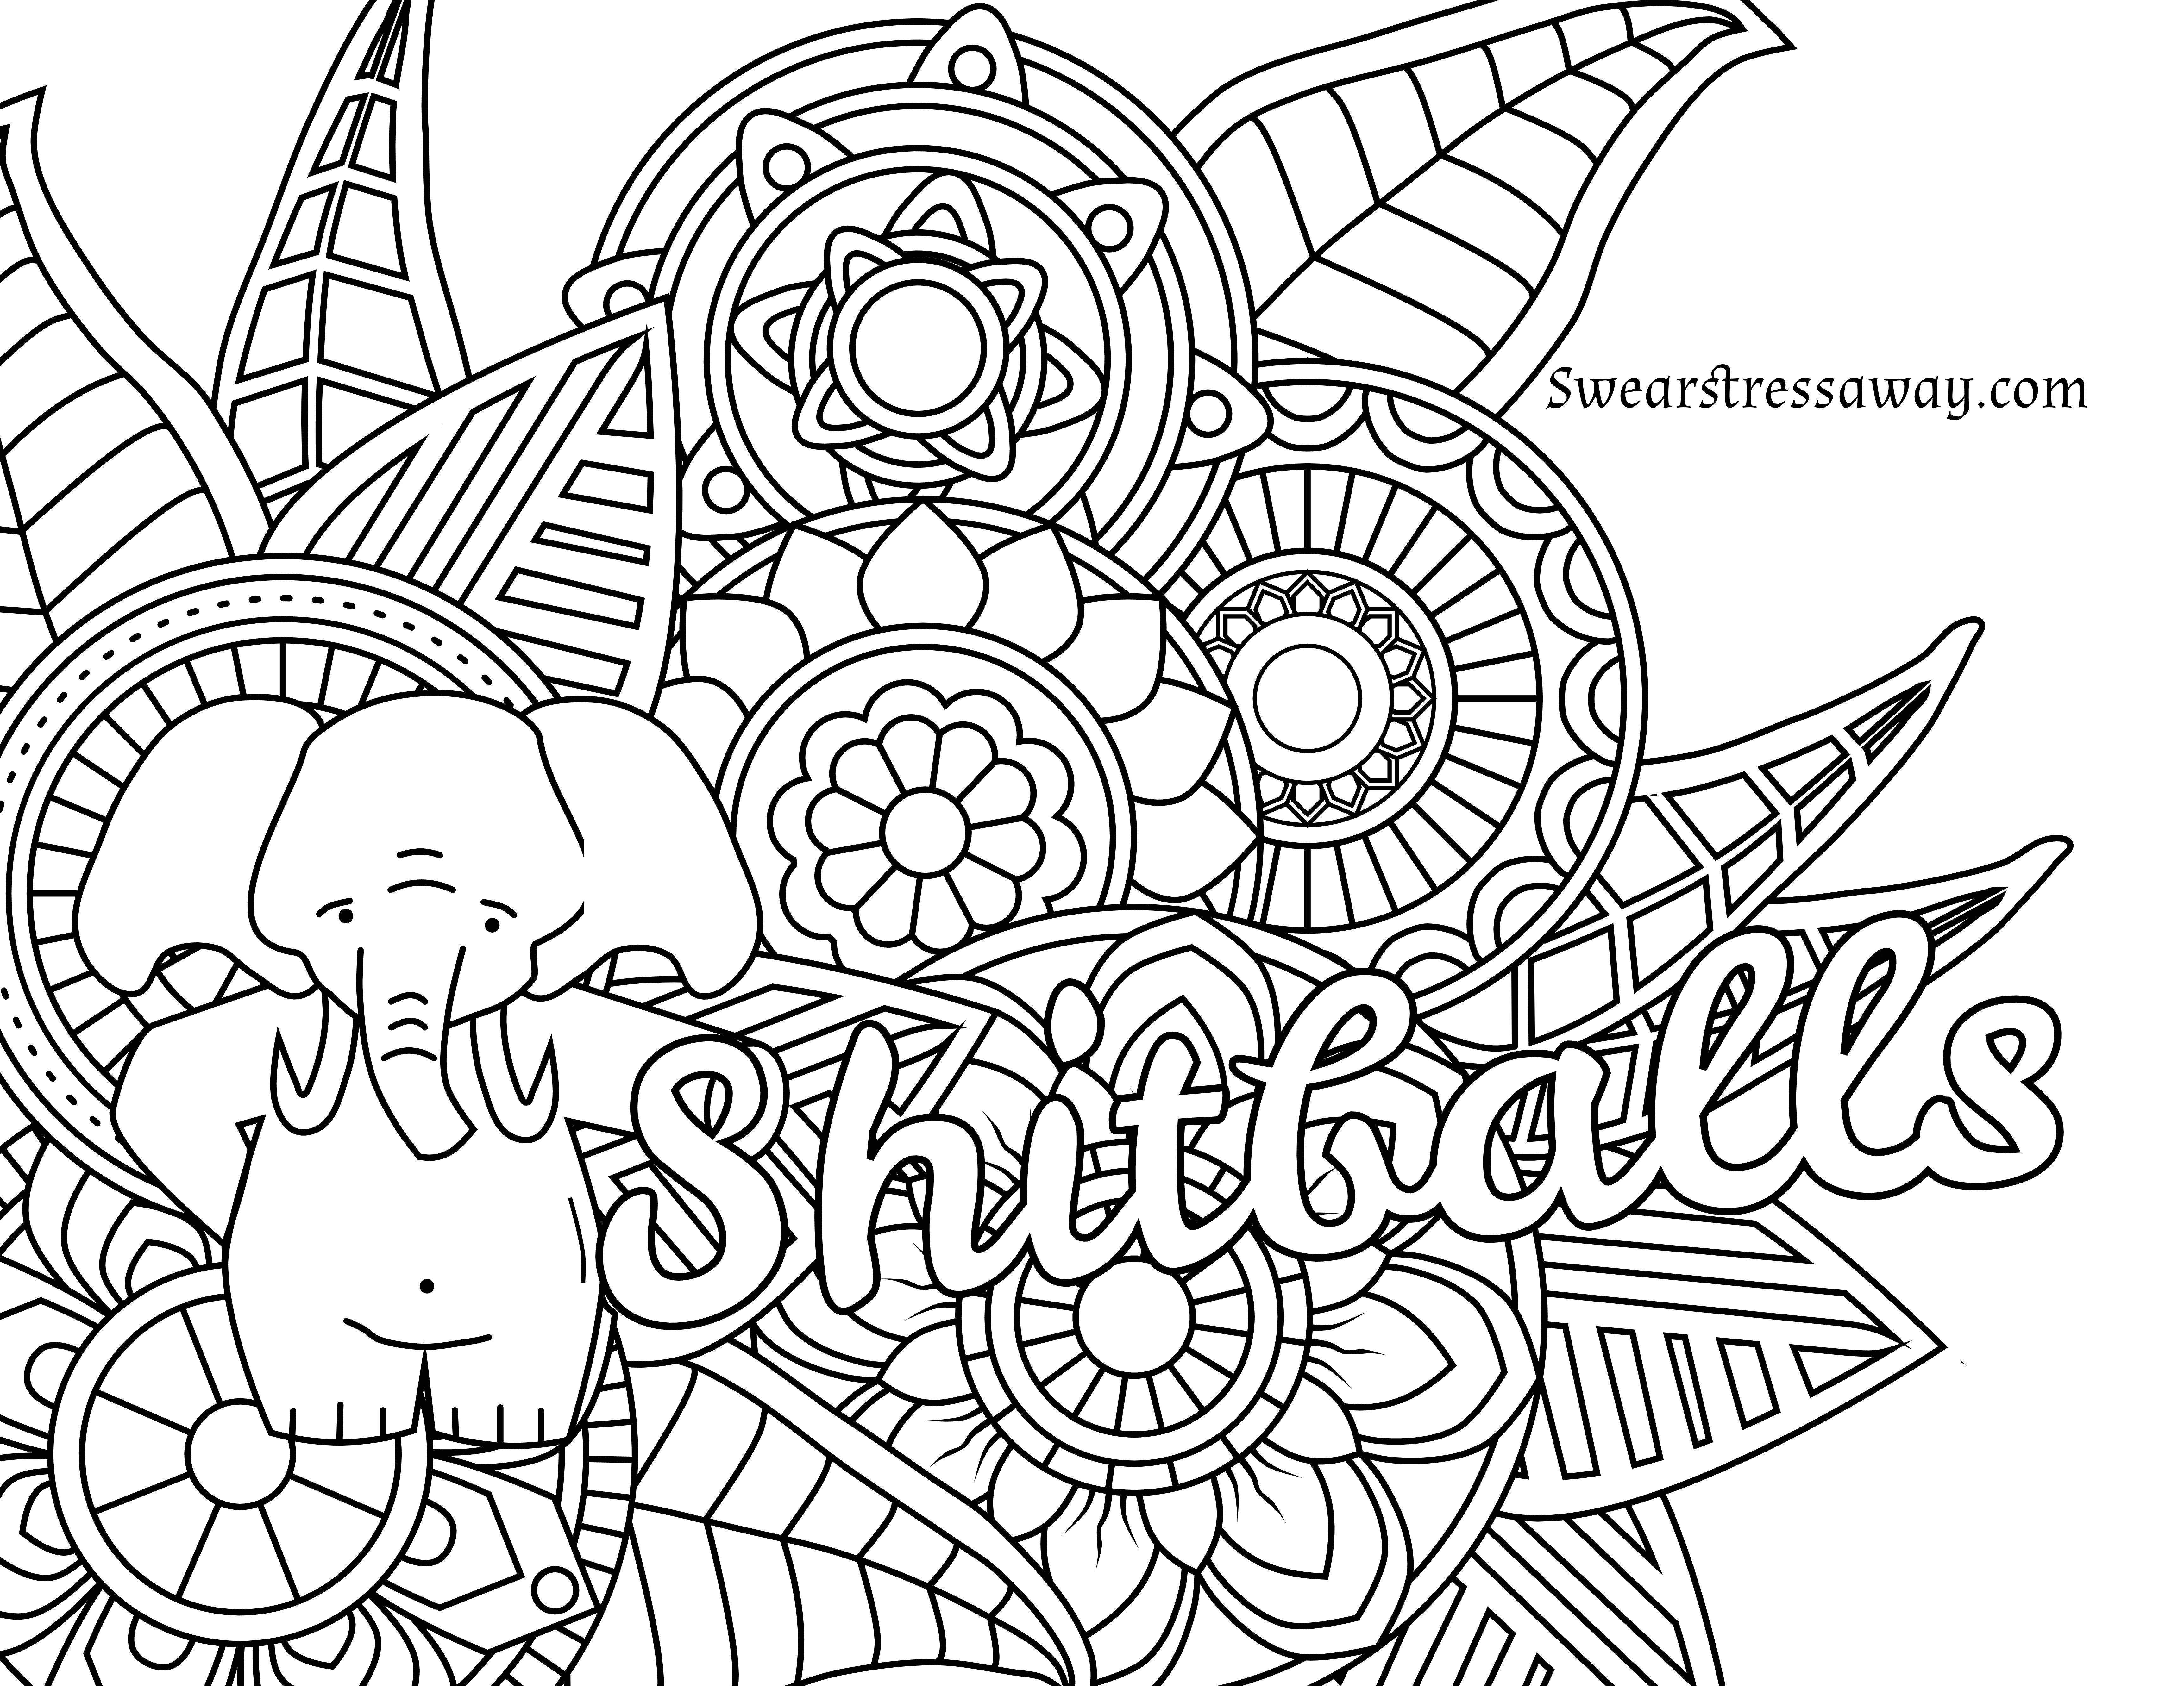 Free Printable Coloring Pages Adults Only Free Printable Coloring - Free Printable Coloring Pages For Adults Only